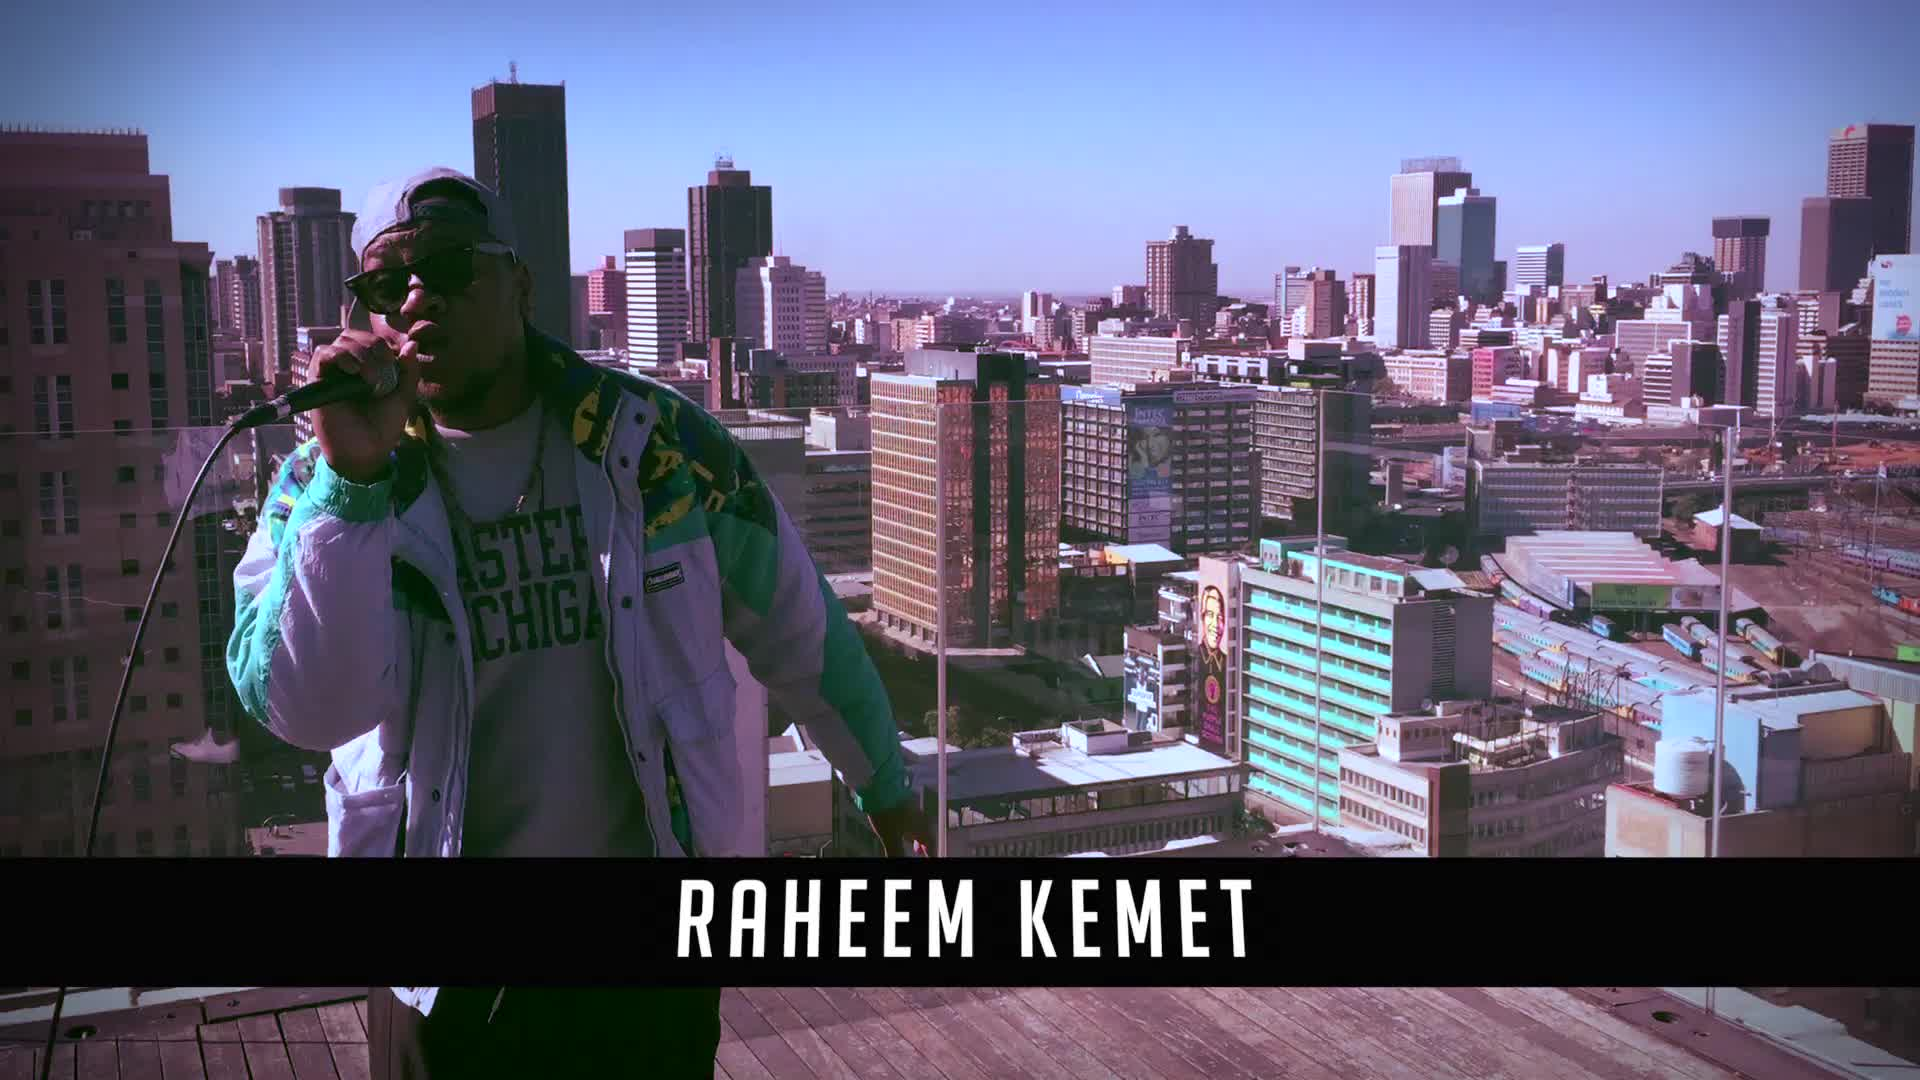 Raheem kemet - The Fire